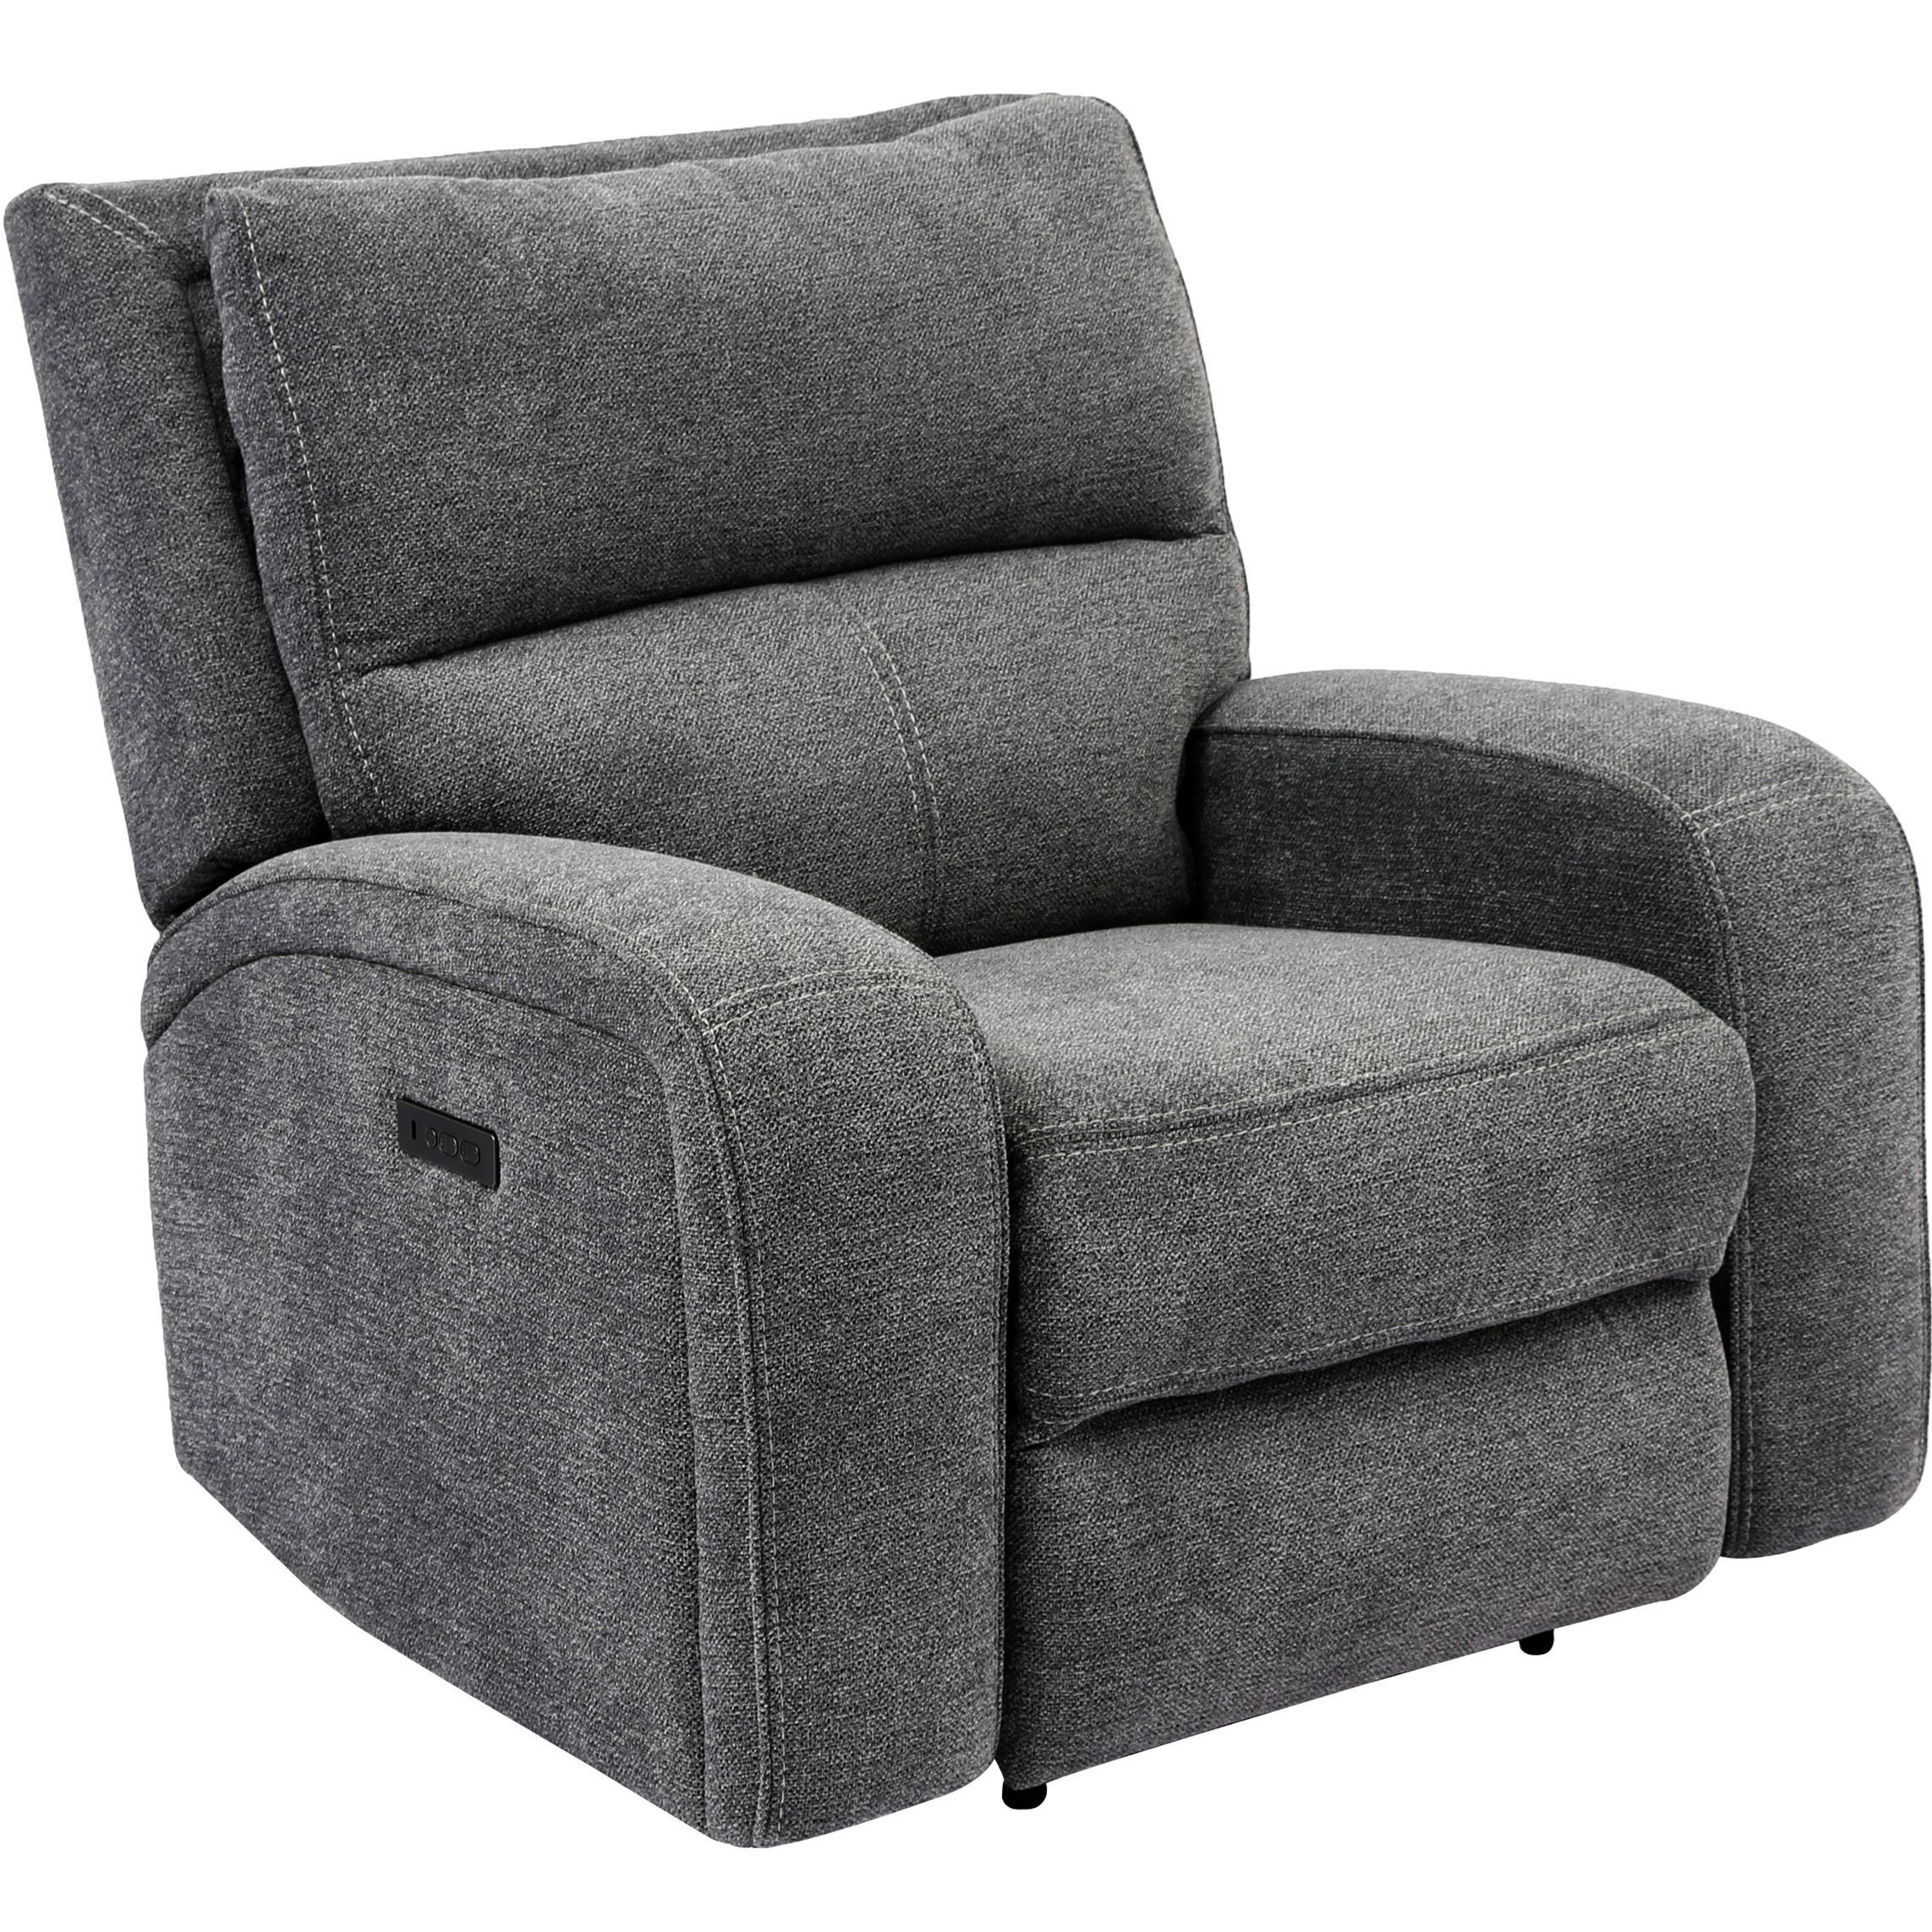 Polaris Power Recliner by Parker Living at Steger's Furniture